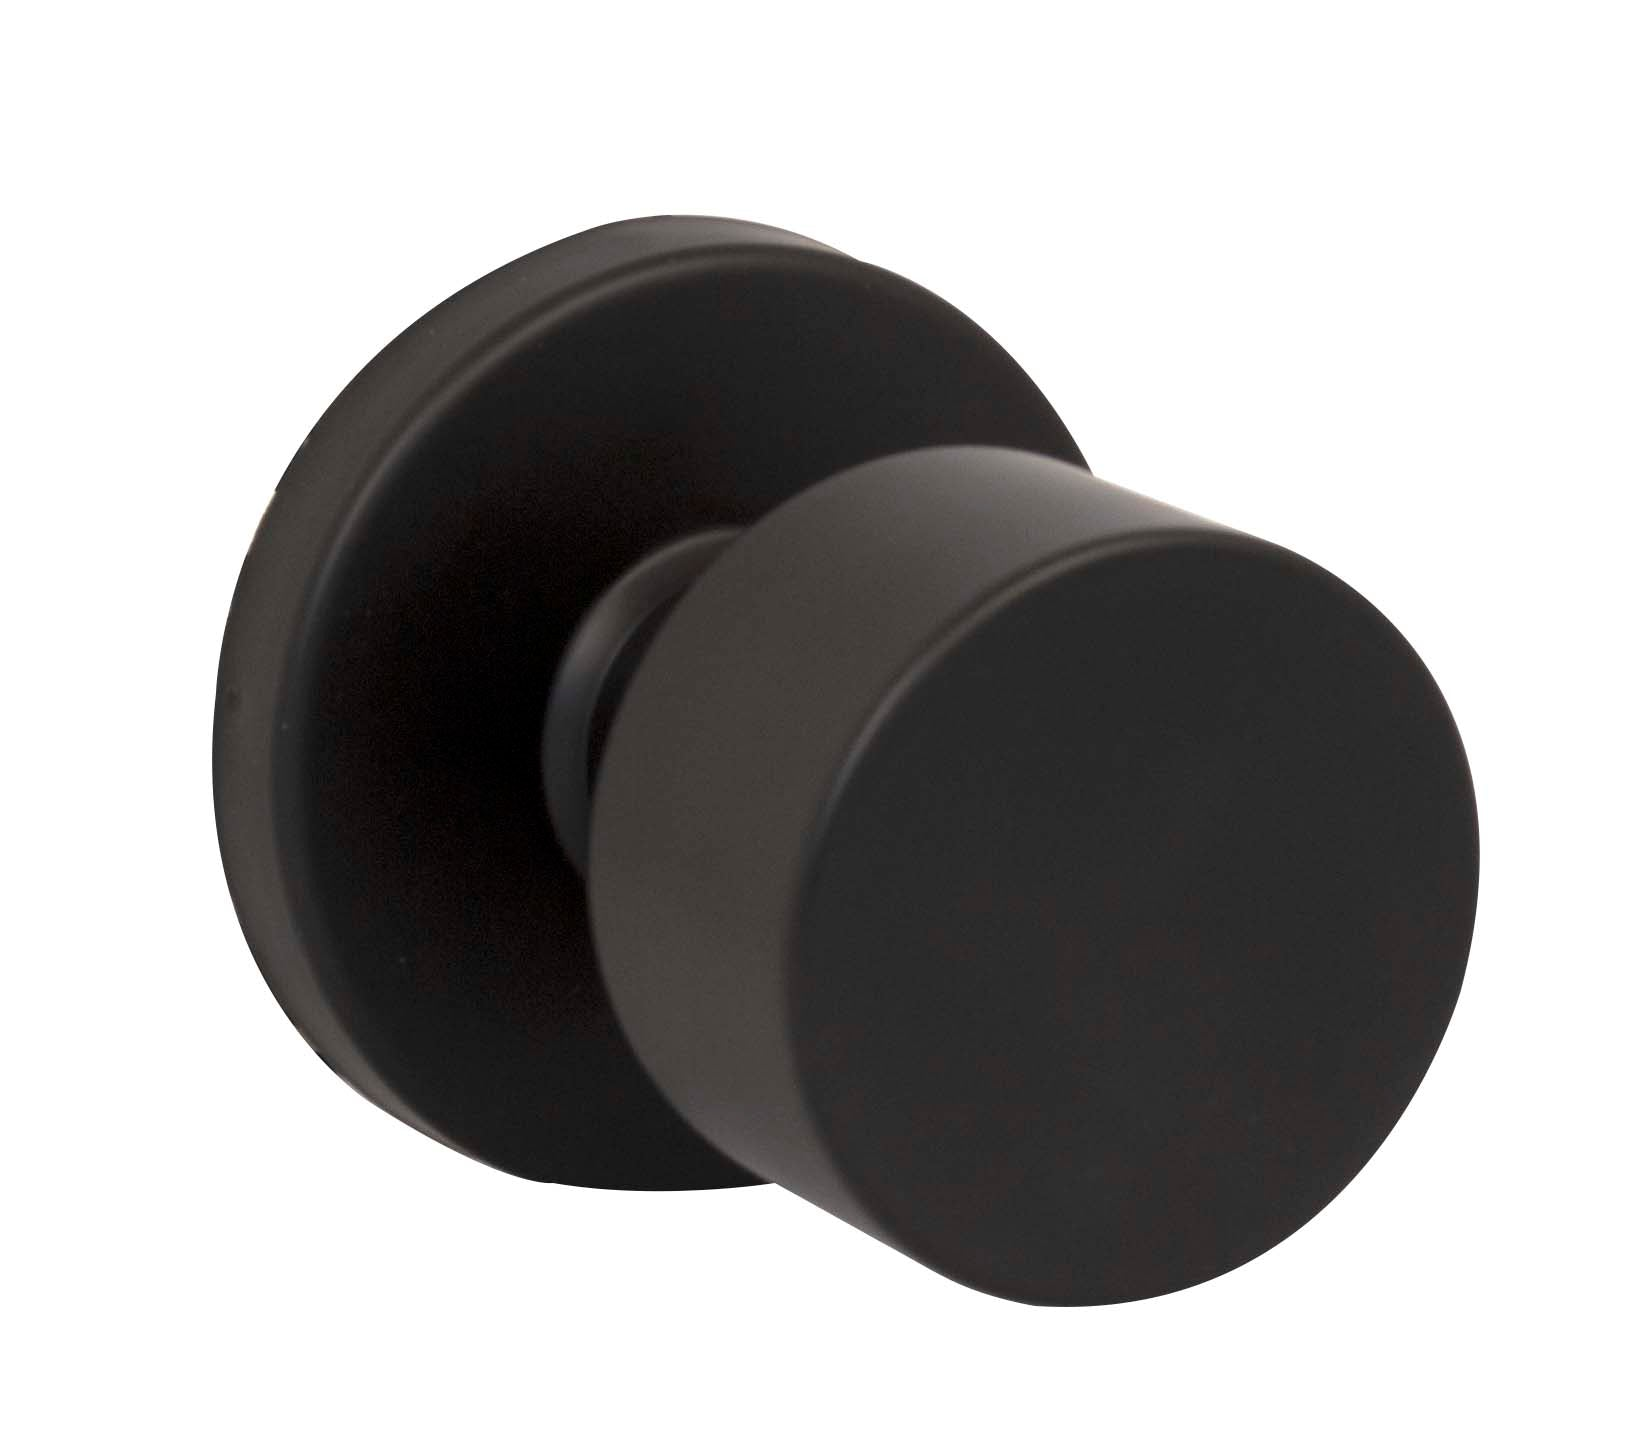 Taymor 30-D006124BLK <strong>BARCELONA KNOB Knobset in Matte Black</strong>